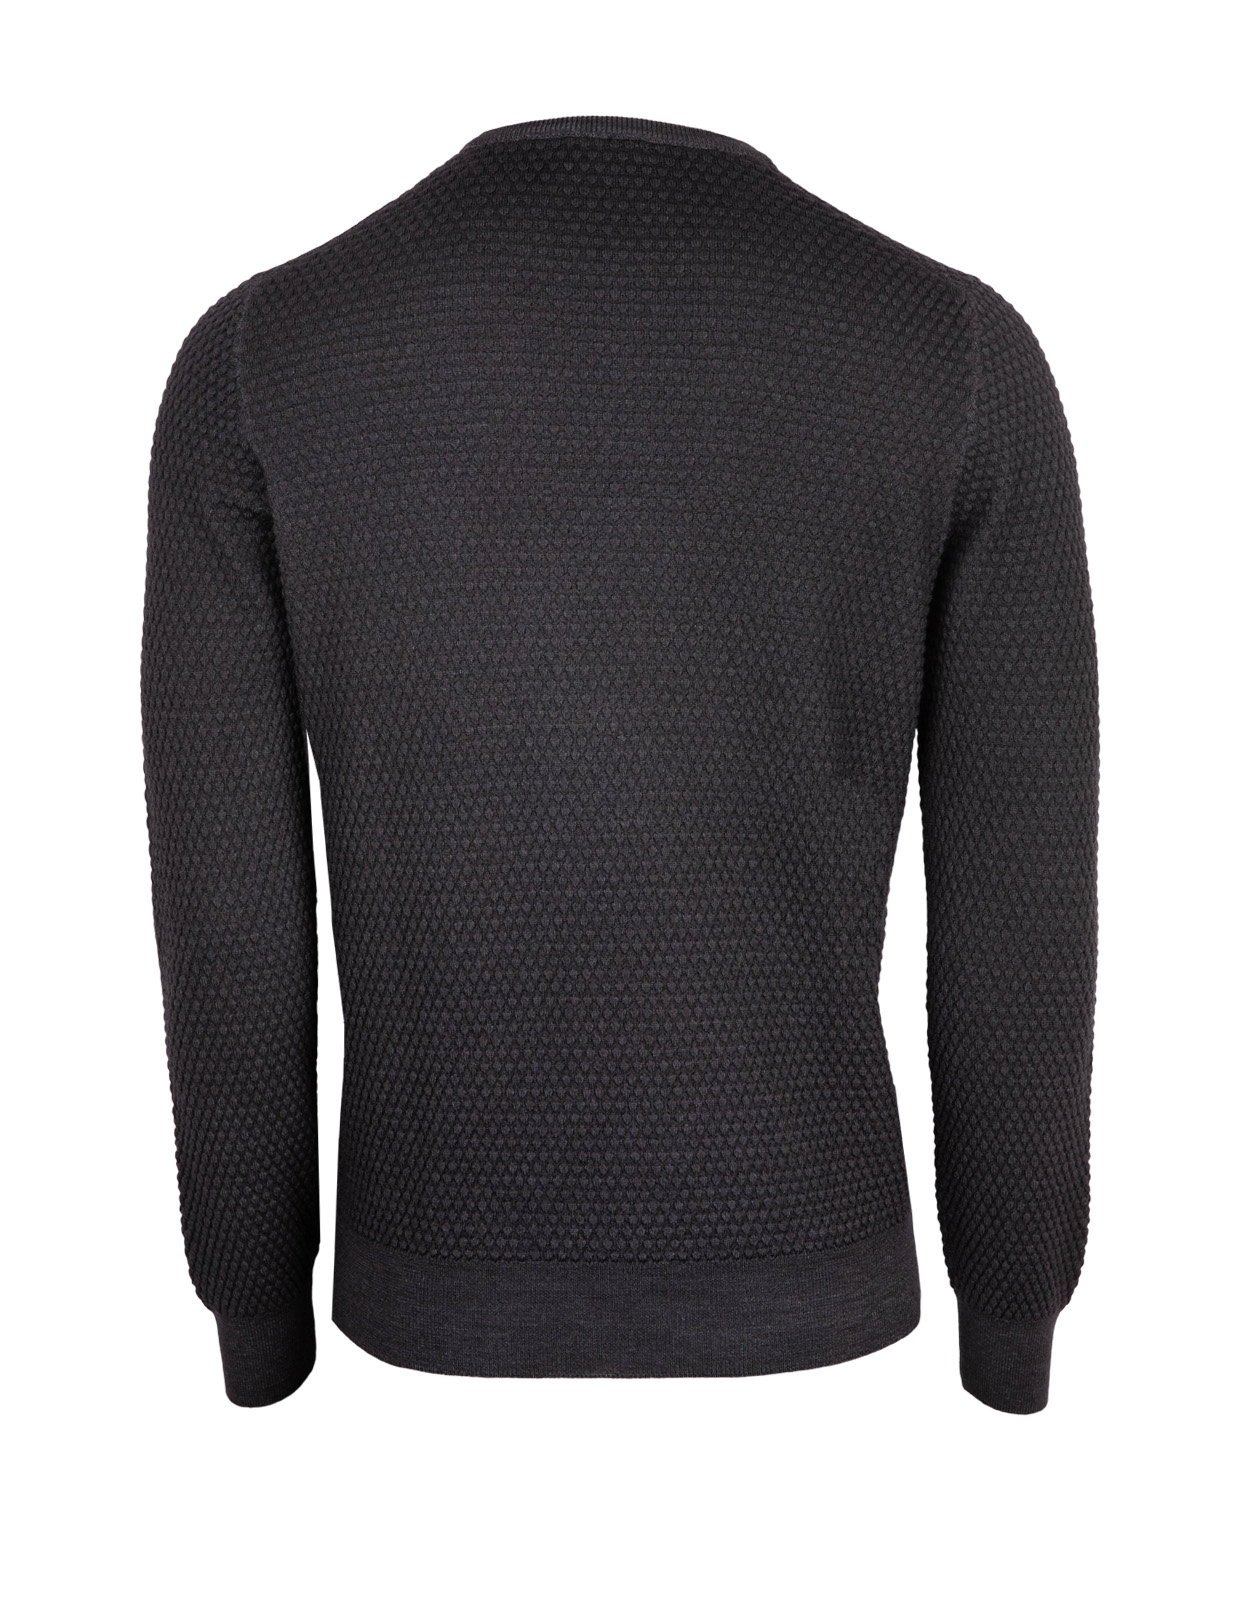 Knitted Texture Vintage Merino Crew Neck Dark Grey